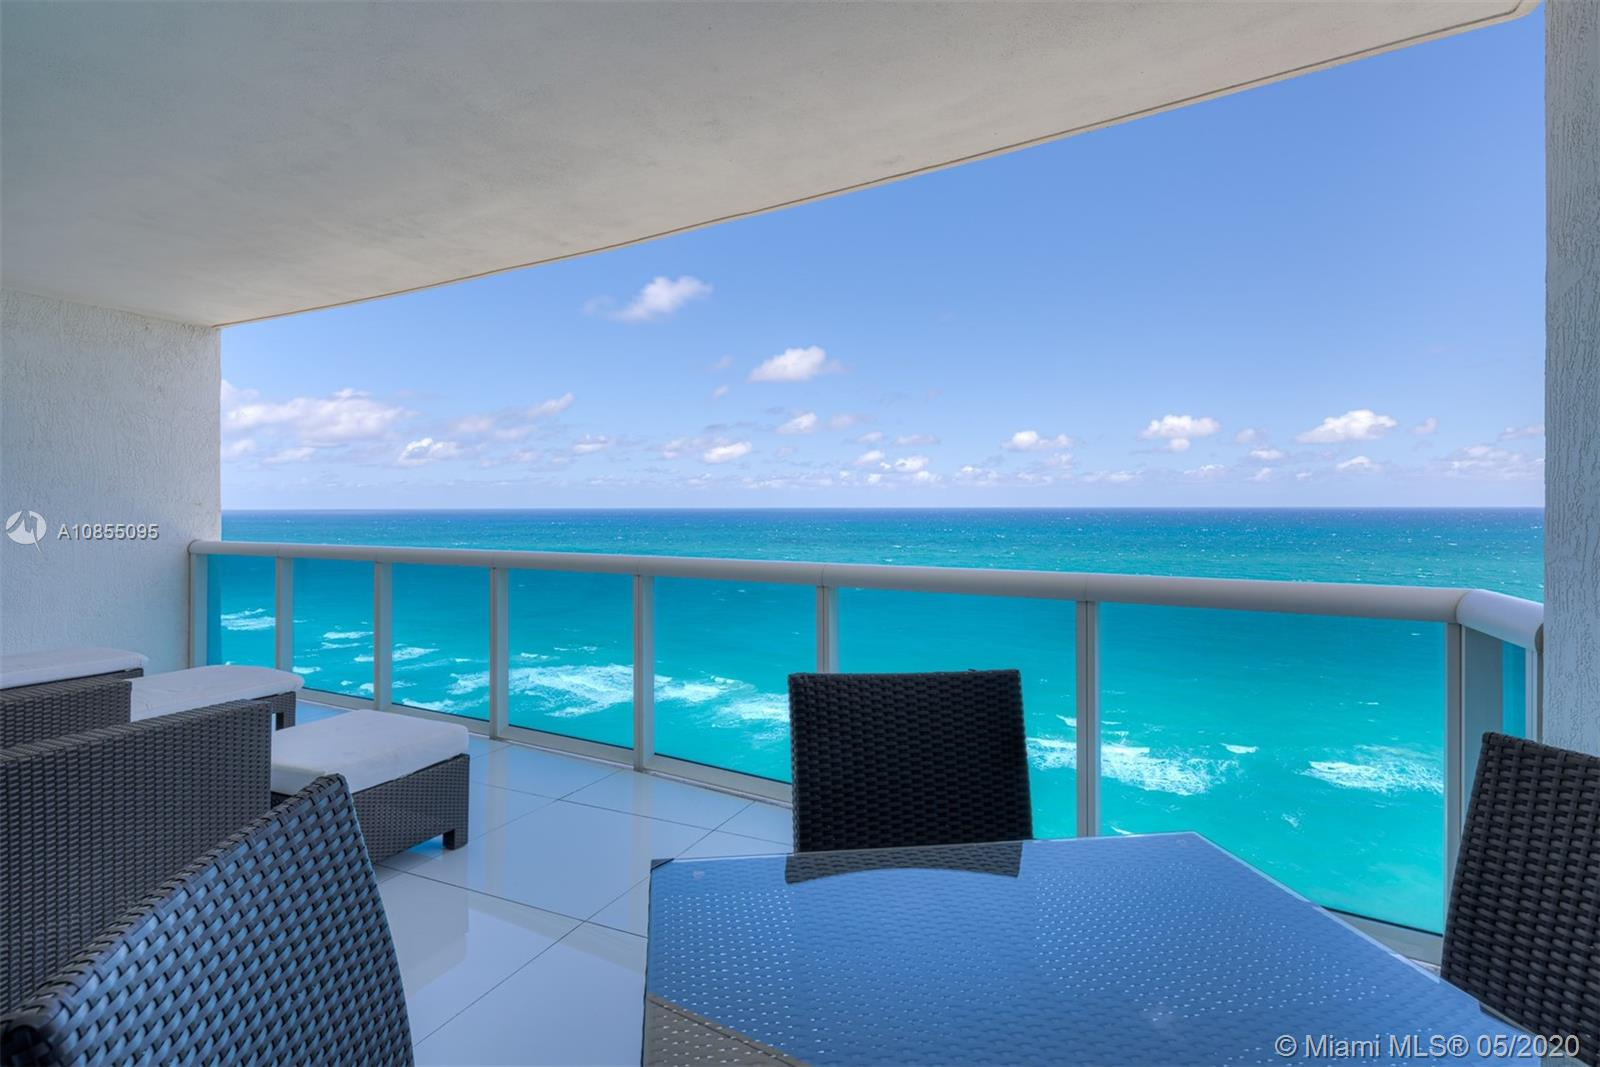 Impeccable fully furnished residence with direct ocean views. Wonderful flow-through floorplan with 3 bed, 3 1/2 ba + private elevator lobby, and family room. Gorgeous views to the east and to the west. Full-service luxury condominium with all luxury amenities.